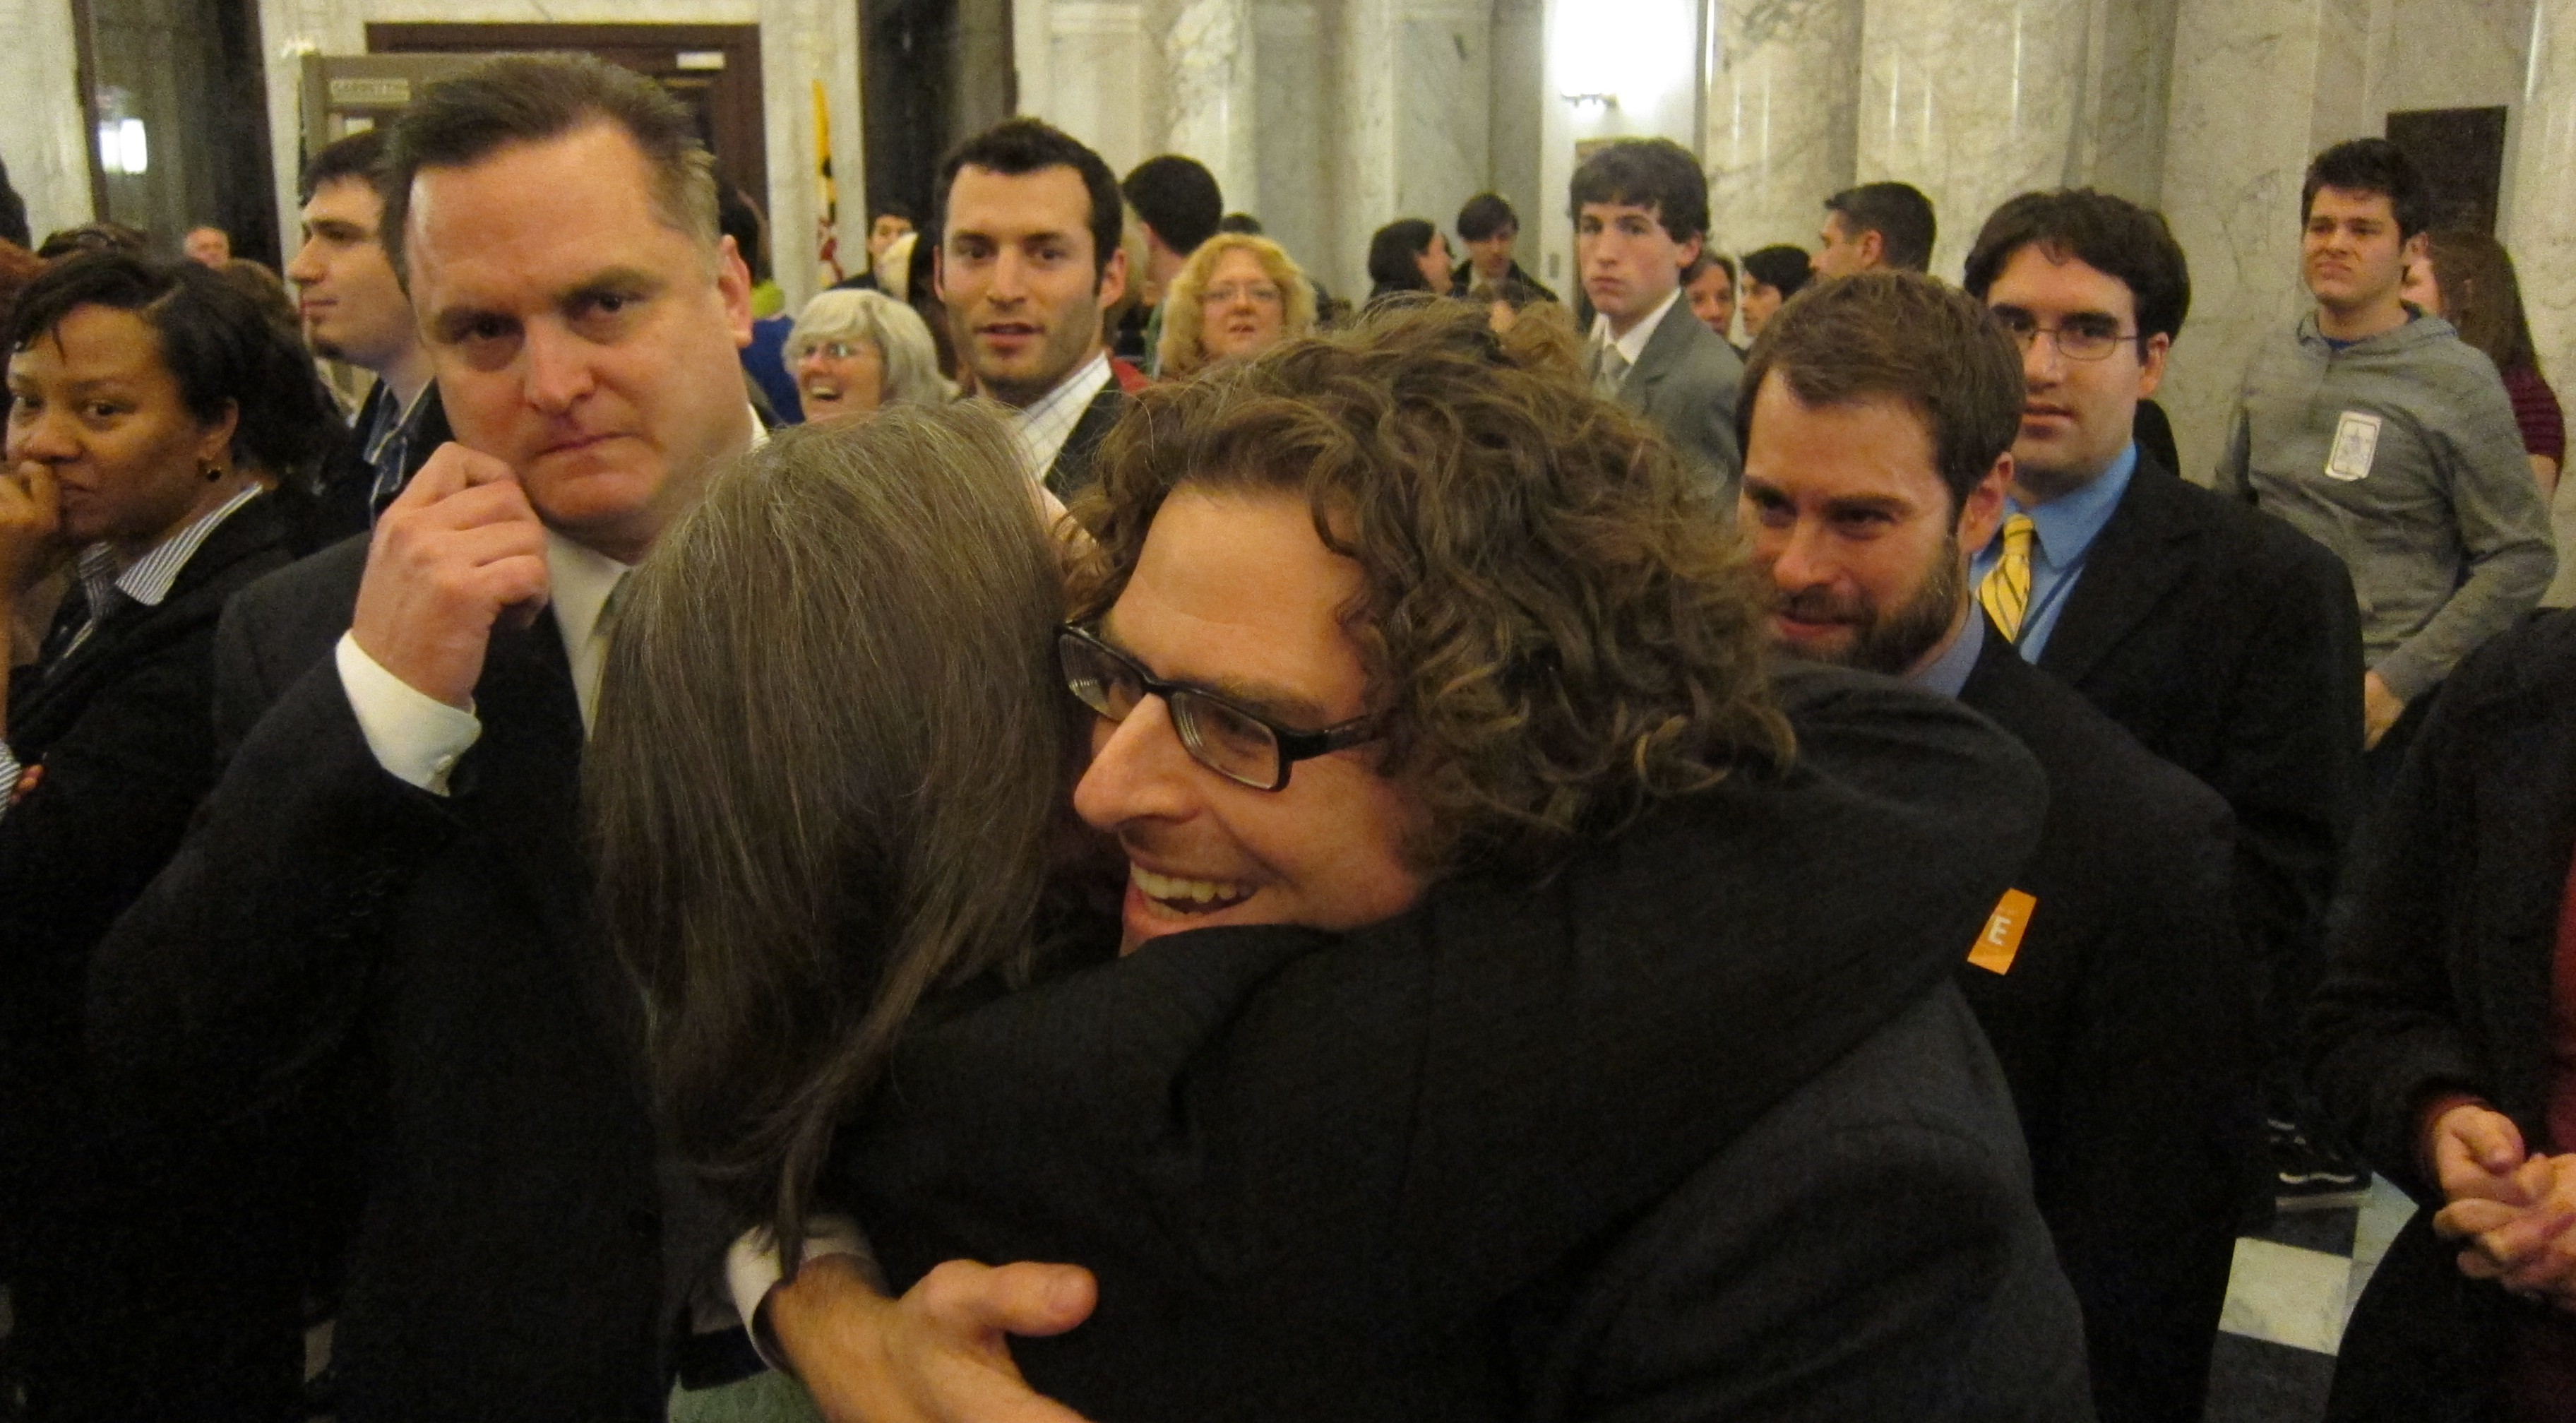 D14's Delegate Anne Kaiser celebrates Civil Marriage passage